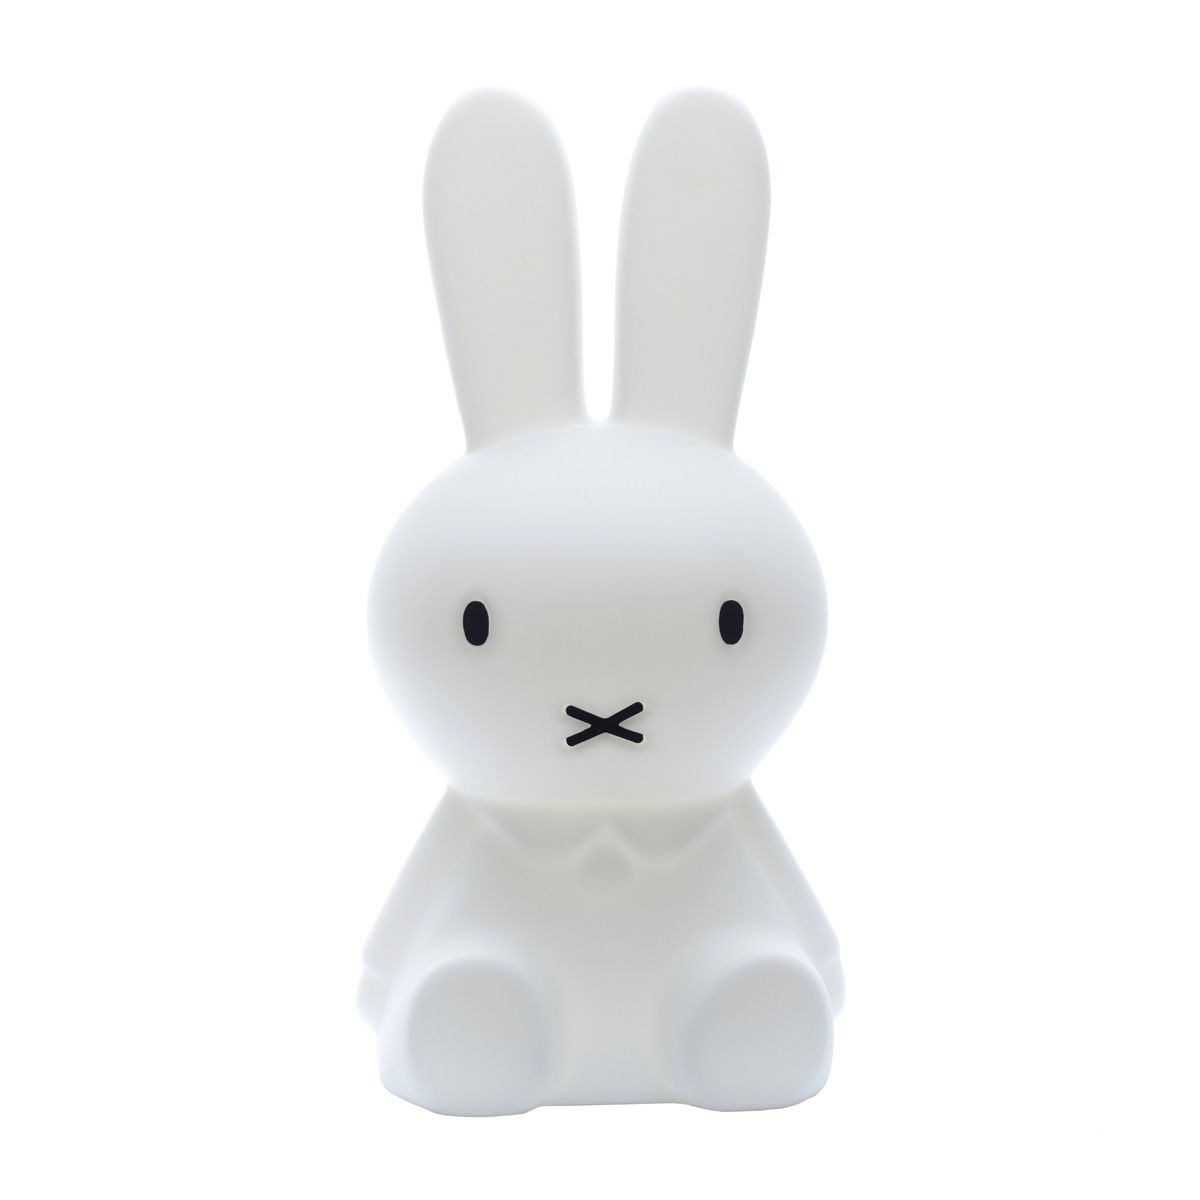 stehleuchte lampe miffy xl von mr maria kaufen bei little roomers. Black Bedroom Furniture Sets. Home Design Ideas